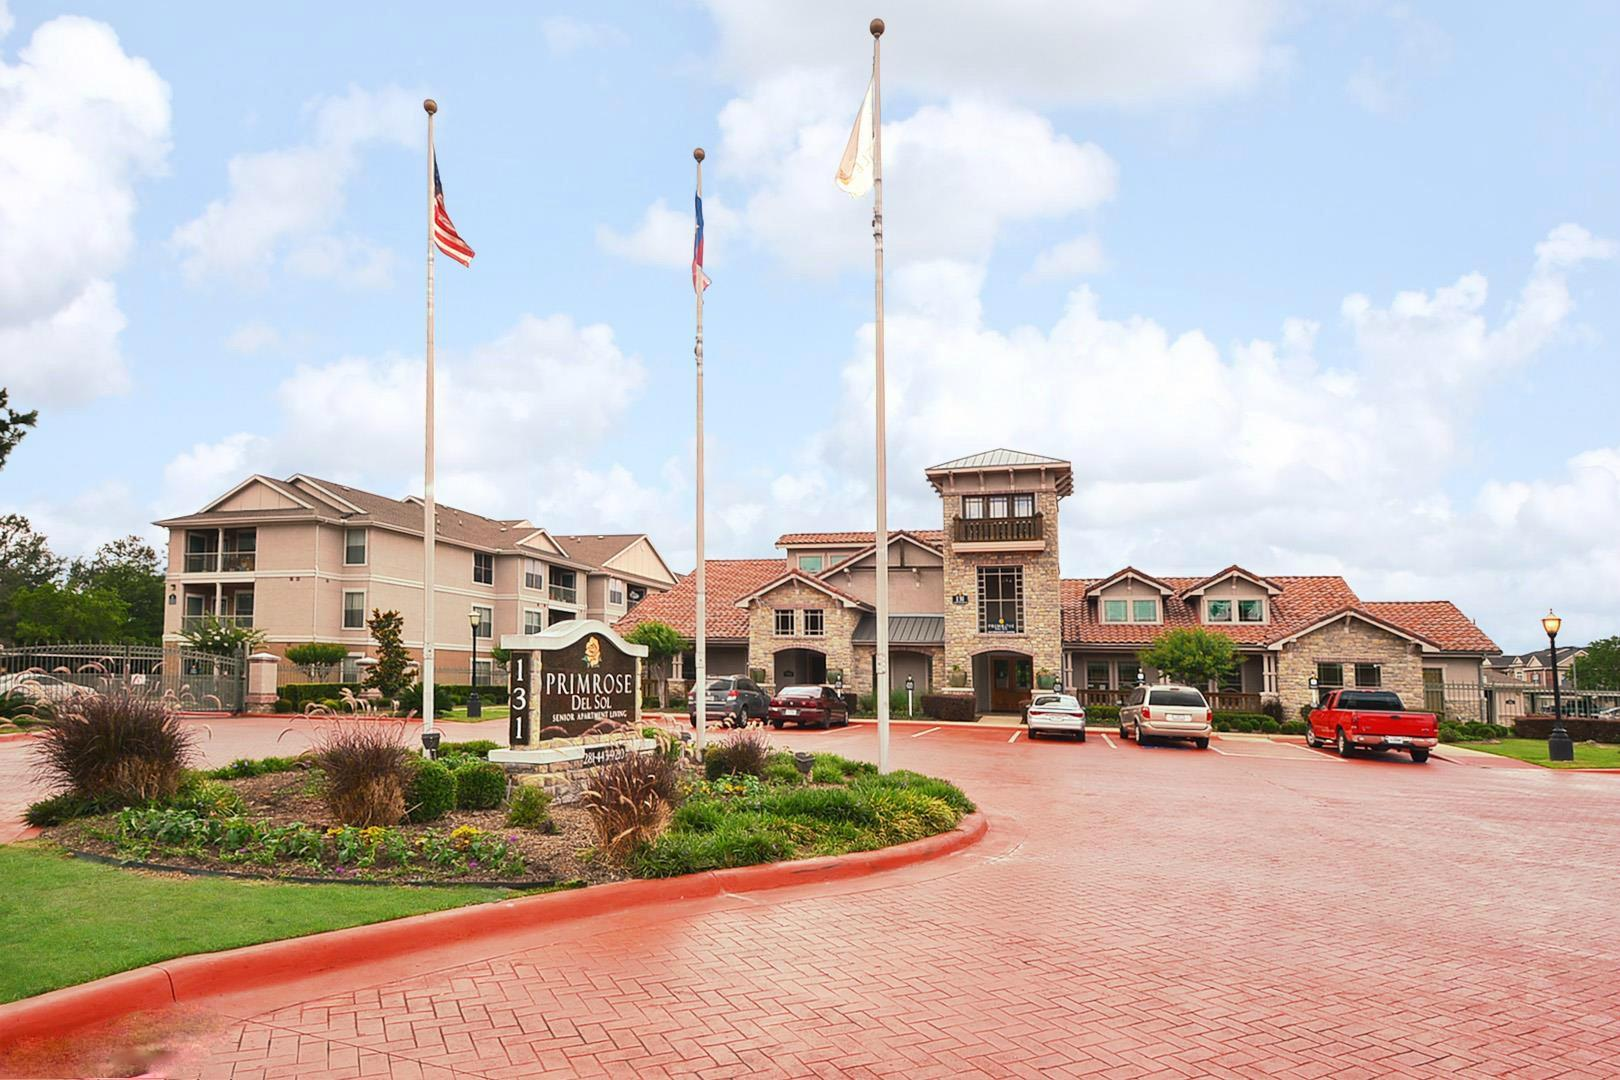 Primrose Del Sol - Active Senior Living Apartments photo #1